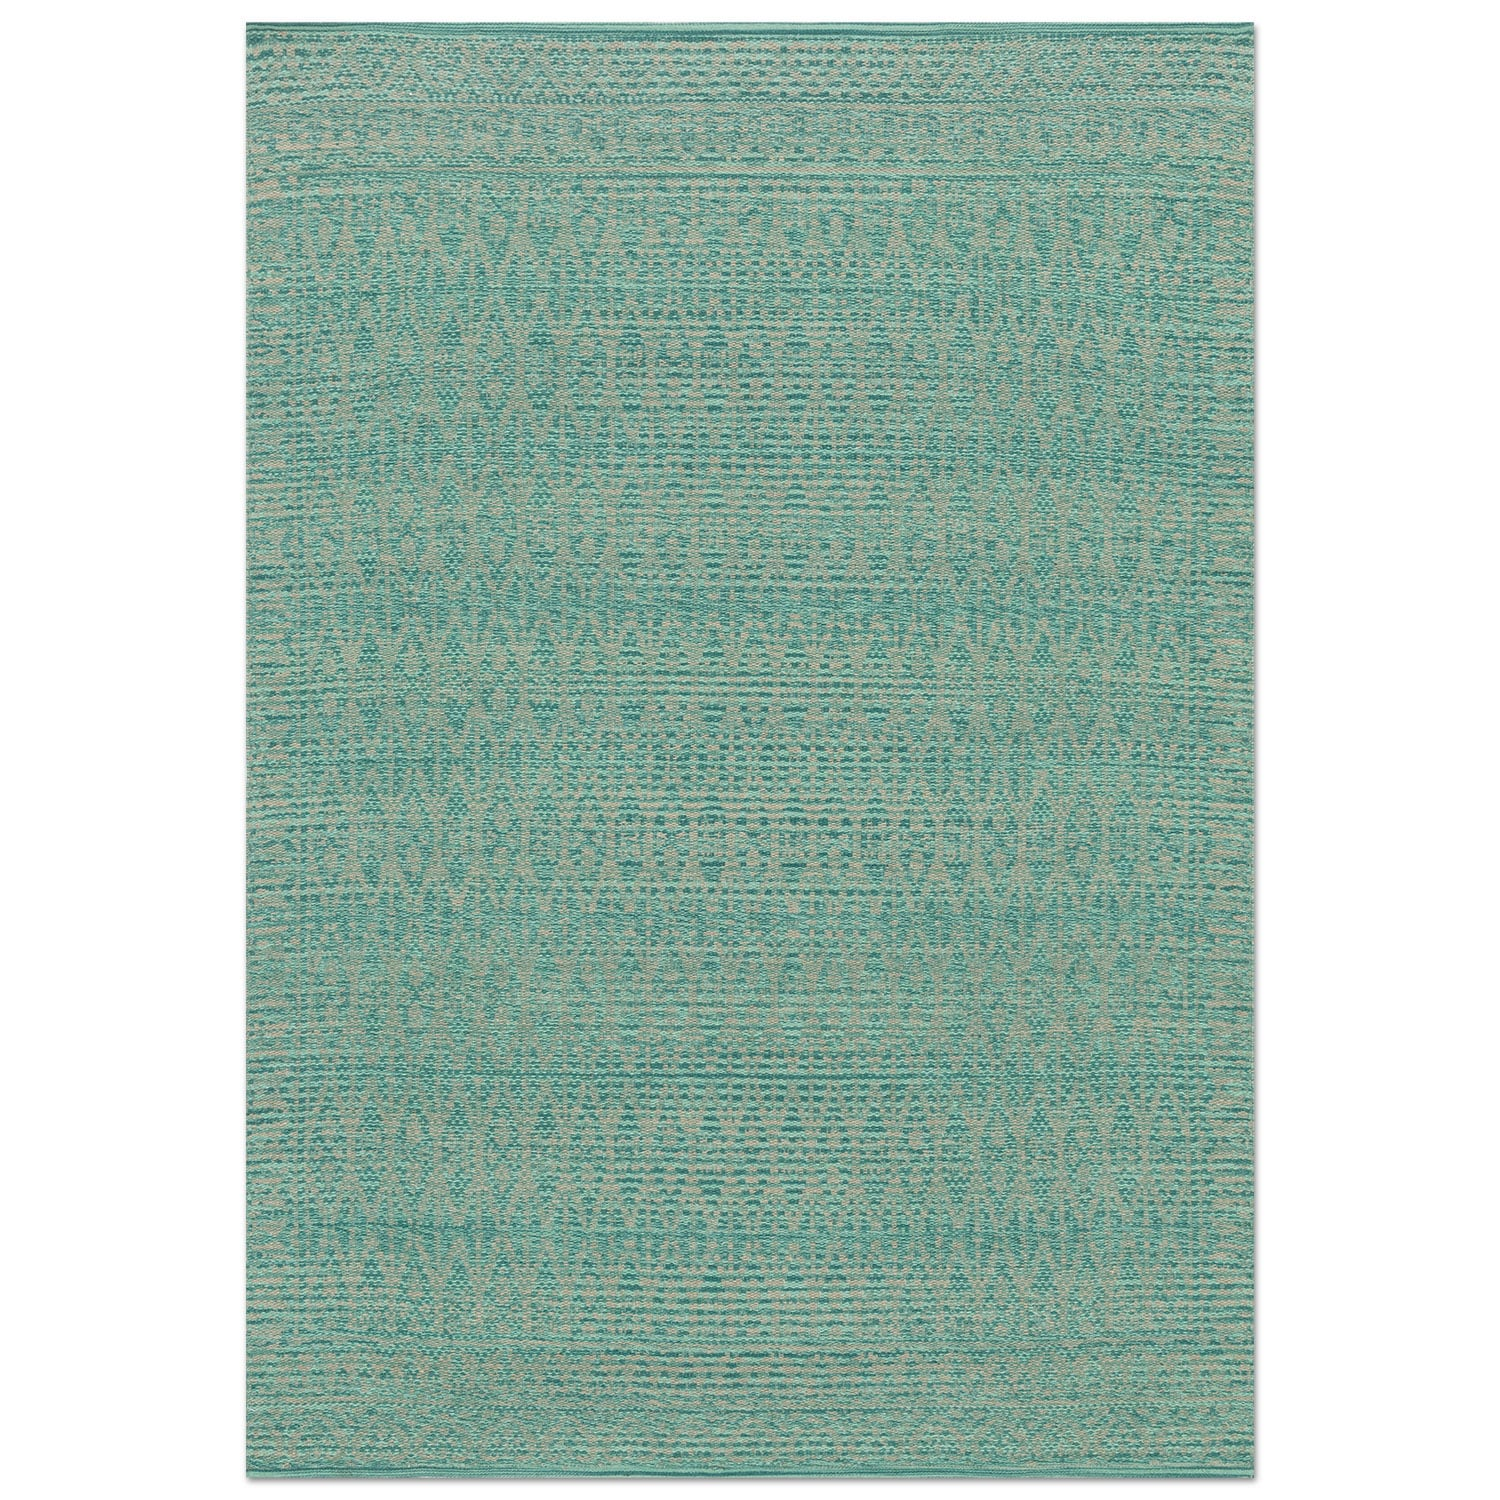 Accent and Occasional Furniture - Emmie Kay 5' x 8' Rug - Turquoise and Dove